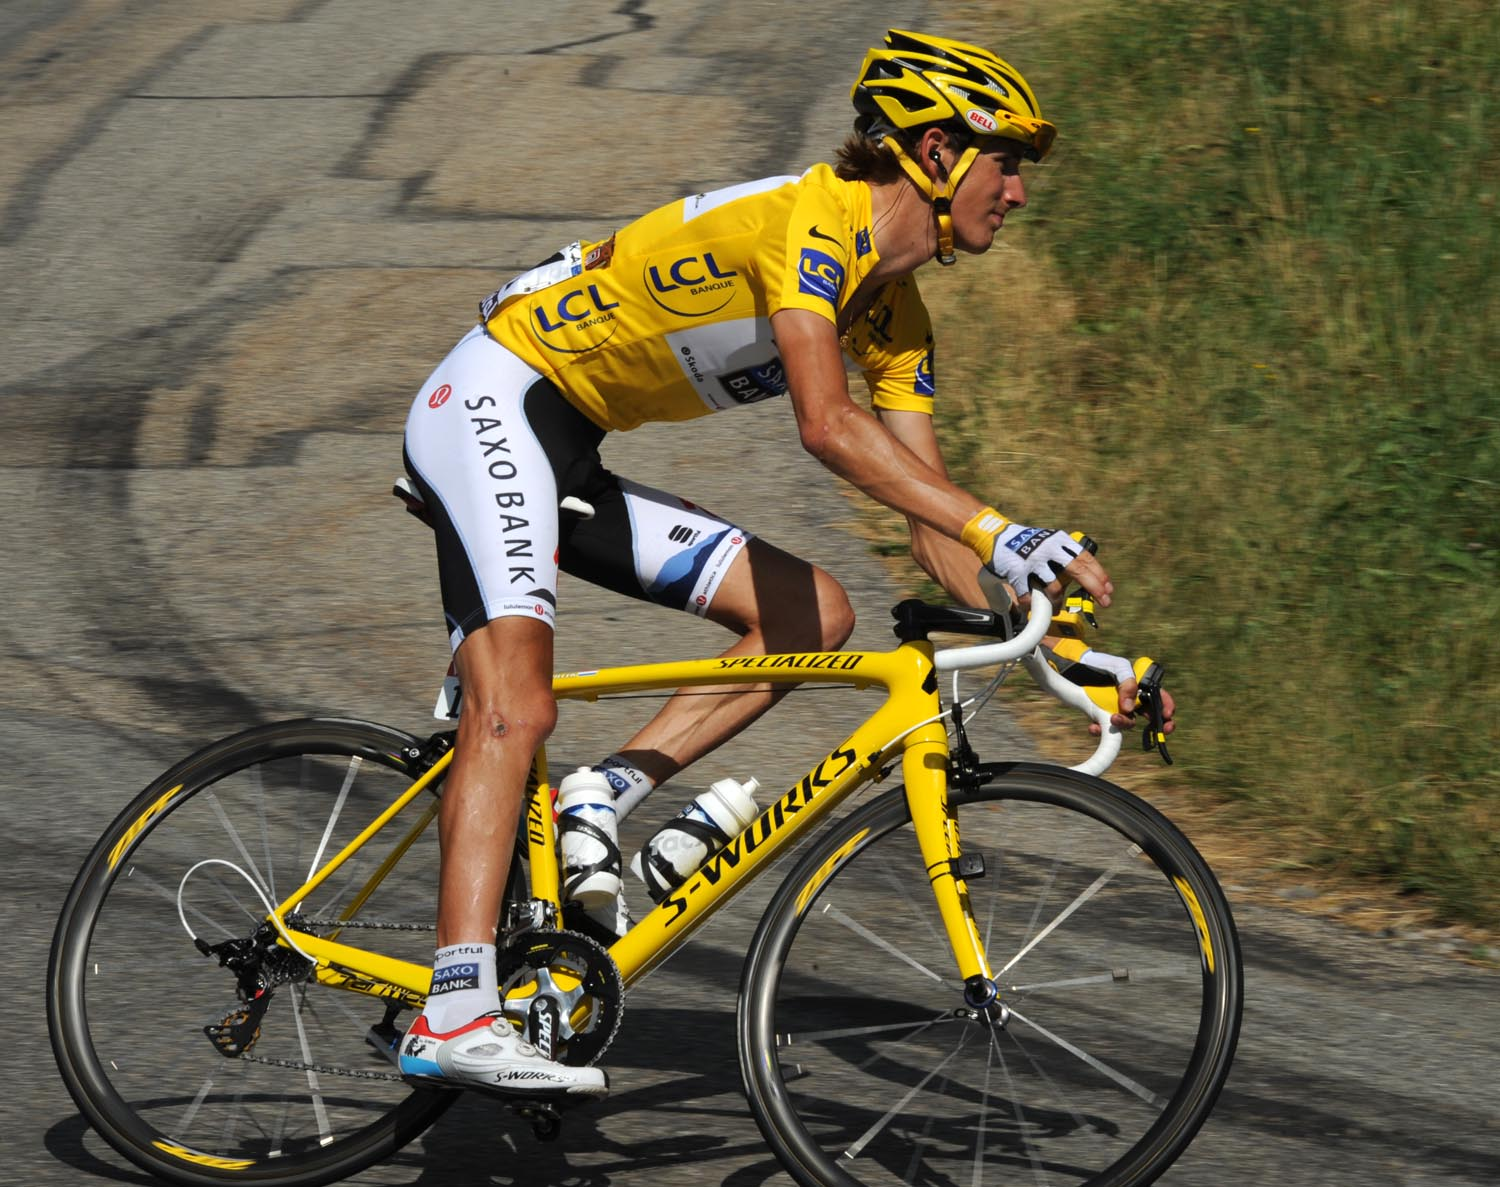 Andy Schleck, Tour de France 2010, stage 10